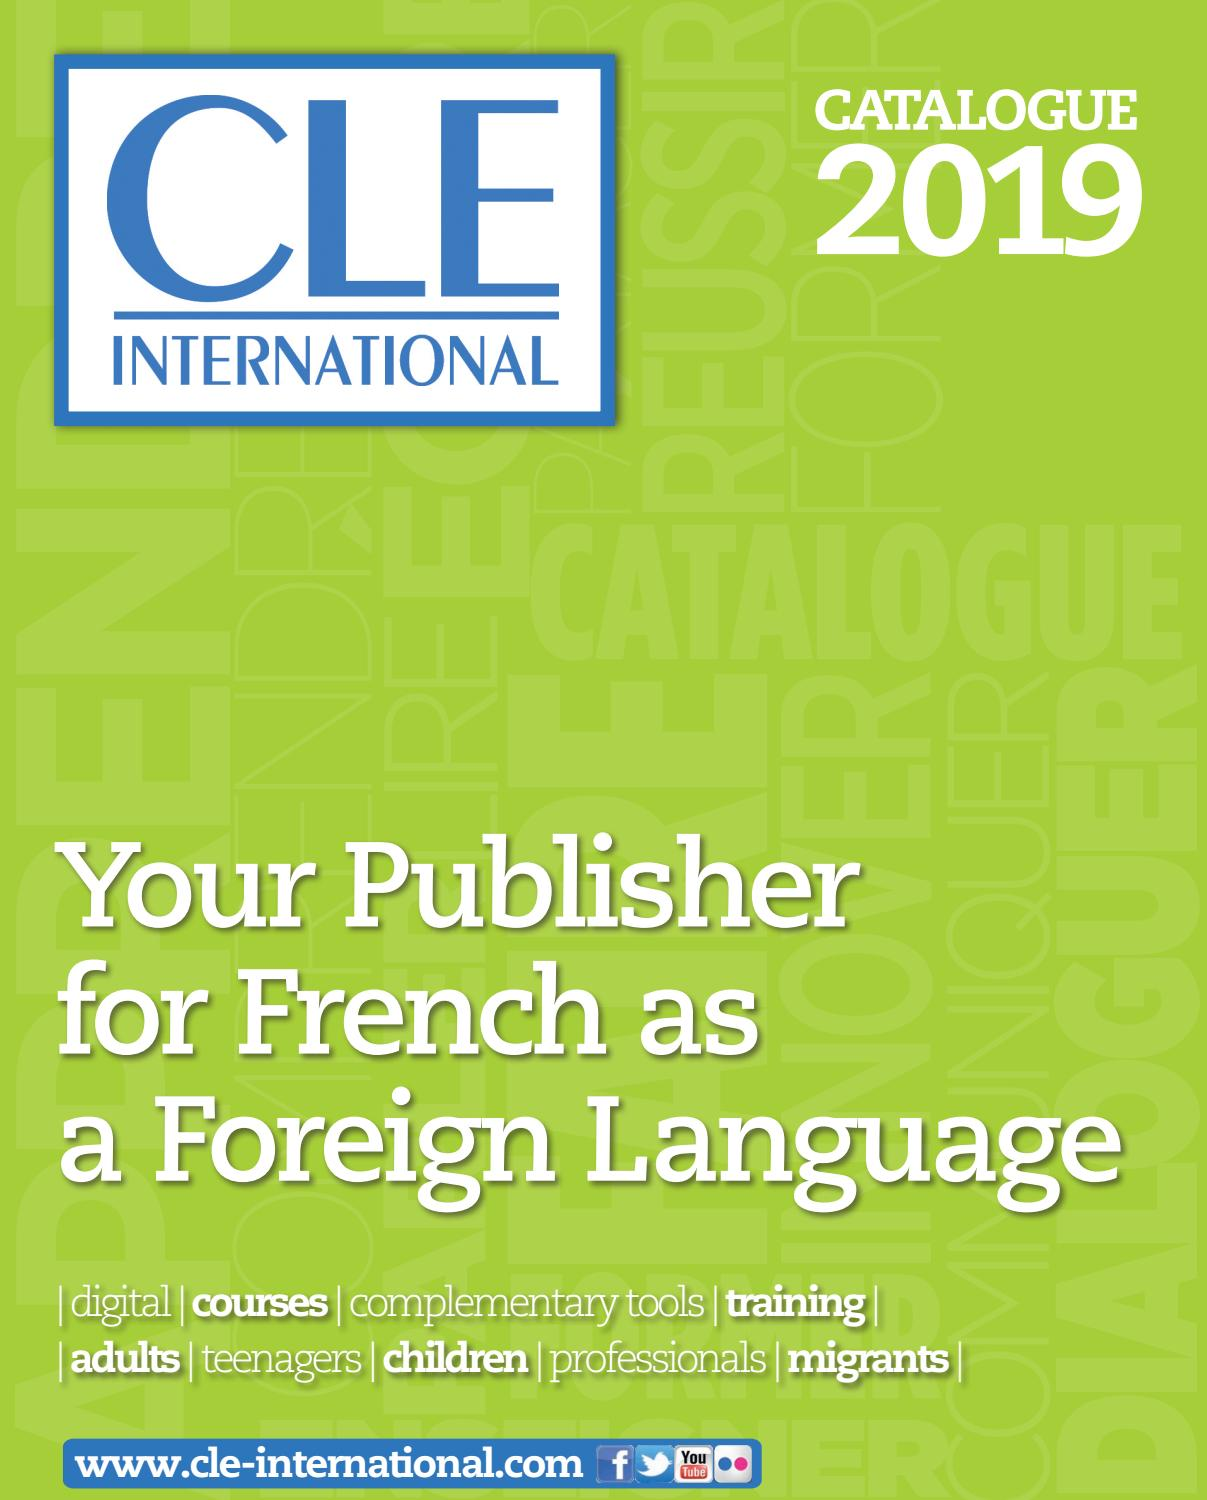 Cle International 2019 Catalogue In English By Cle International Issuu